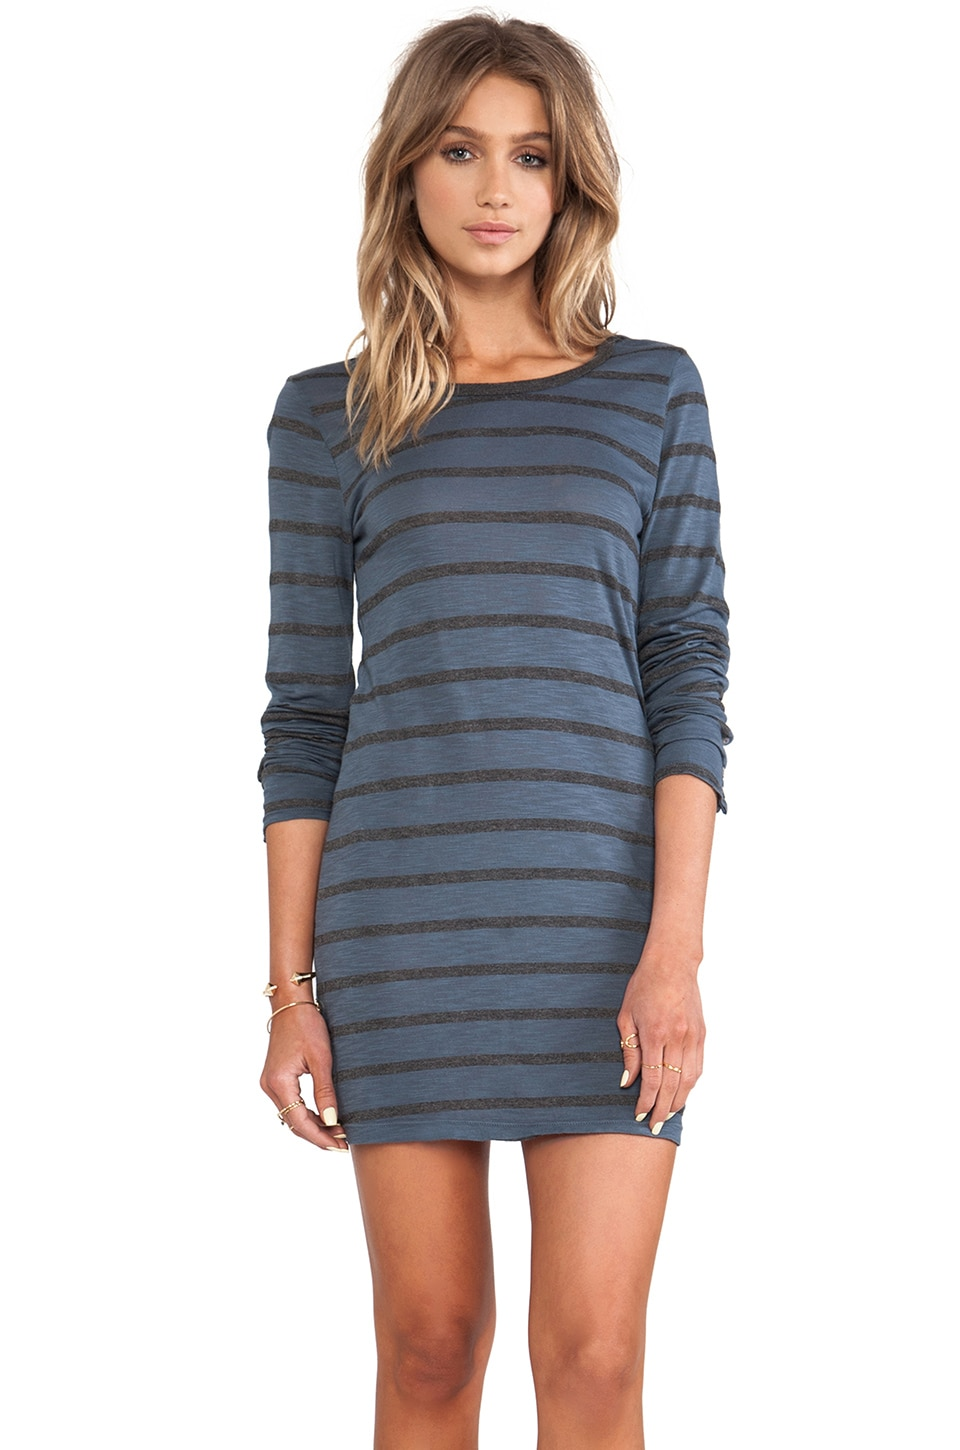 Velvet by Graham & Spencer Fern Charcoal Slub Stripe Long Sleeve Dress in Antwerp